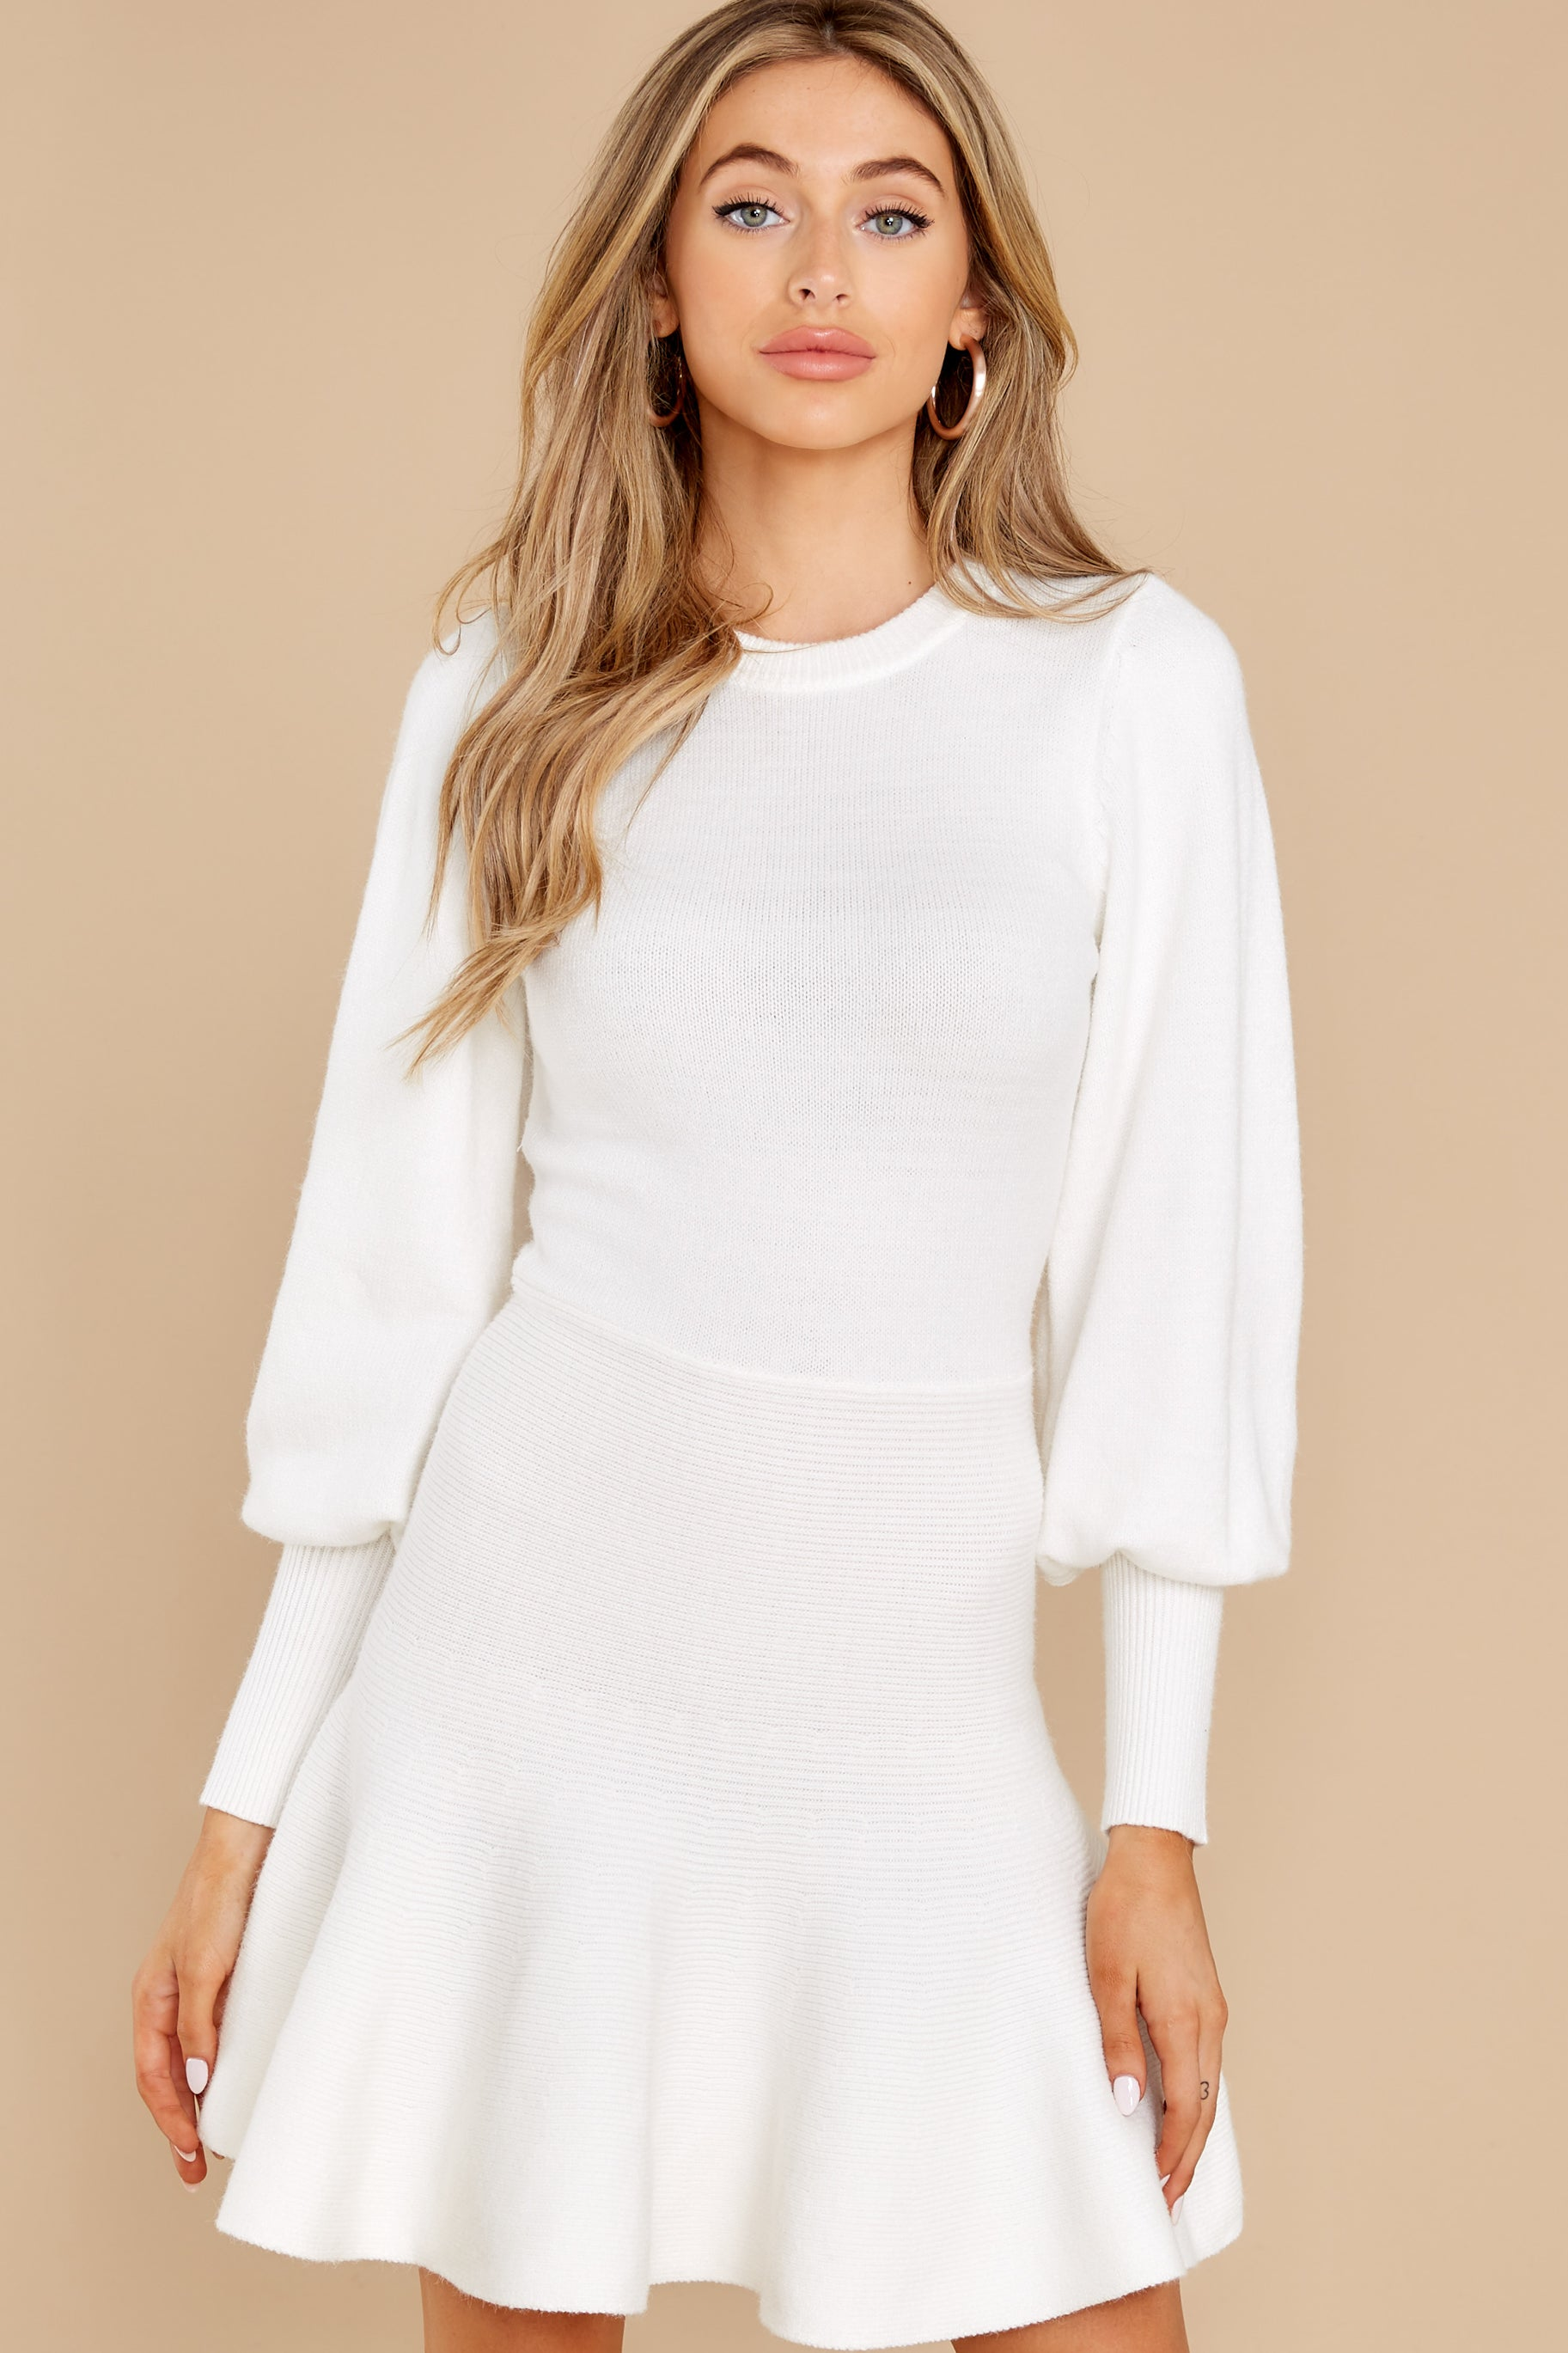 6 Into Me Into You White Sweater Dress at reddress.com